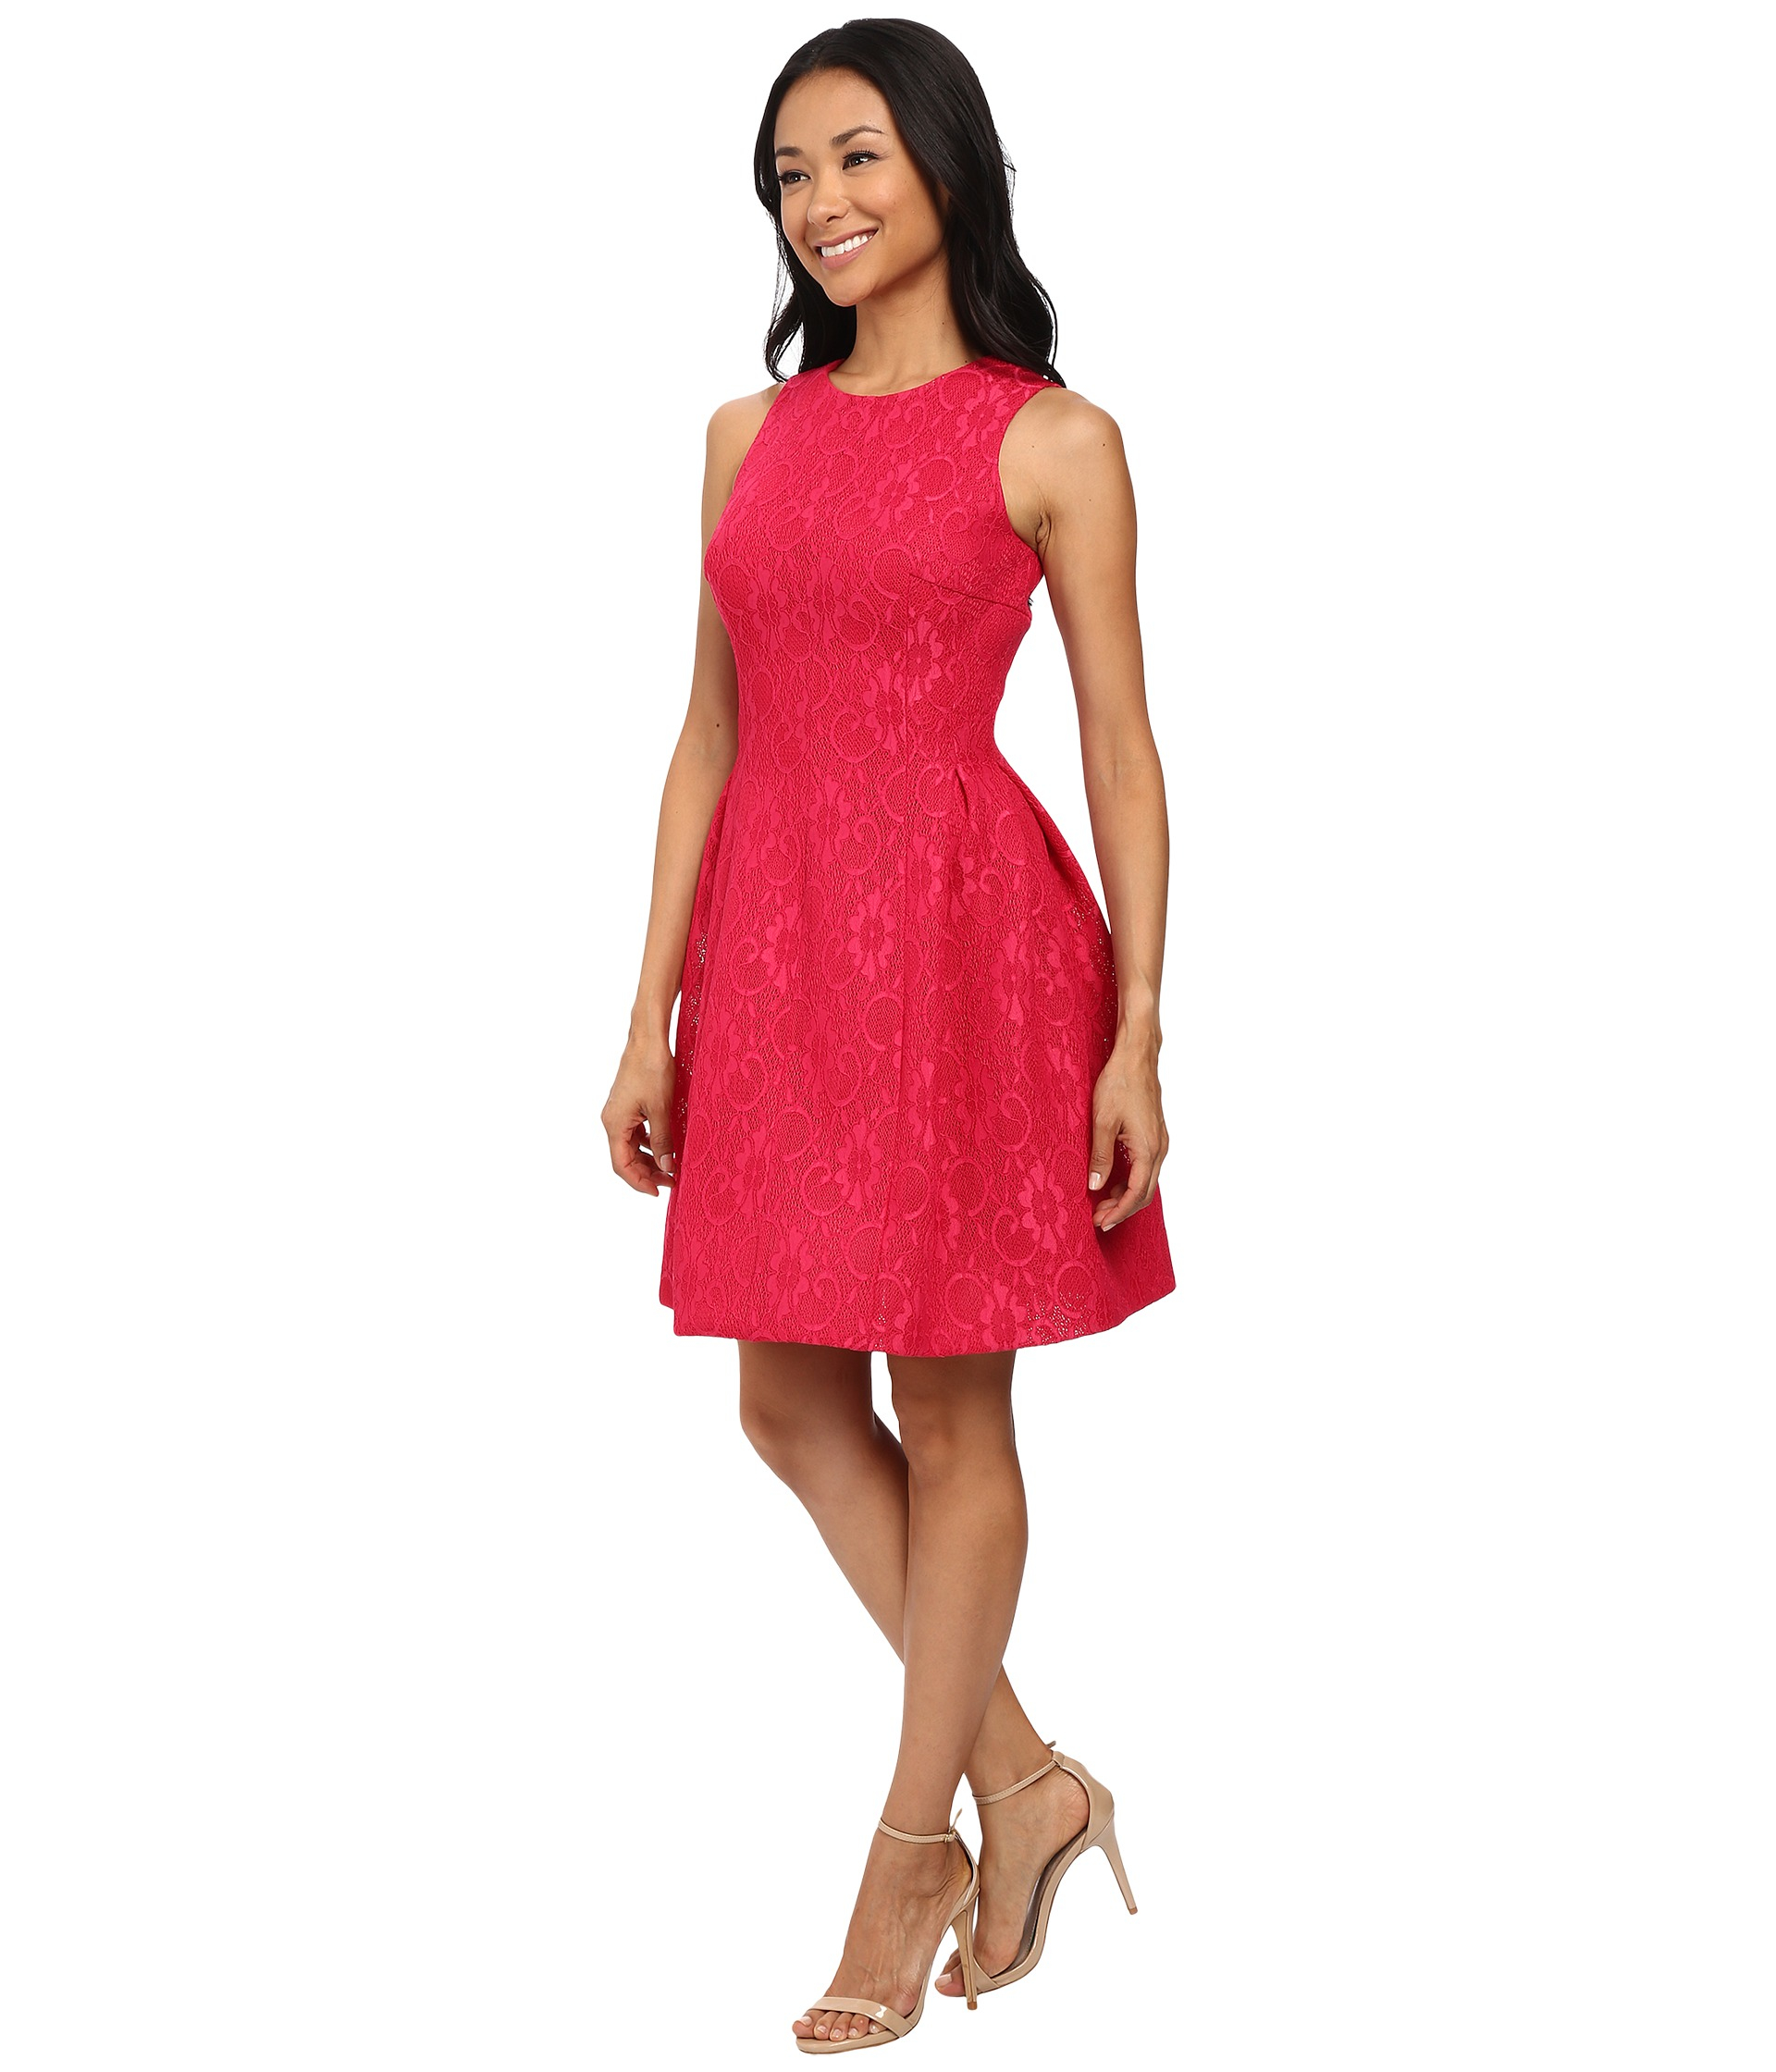 Calvin Klein Lace Fit Amp Flare Dress In Pink Lyst